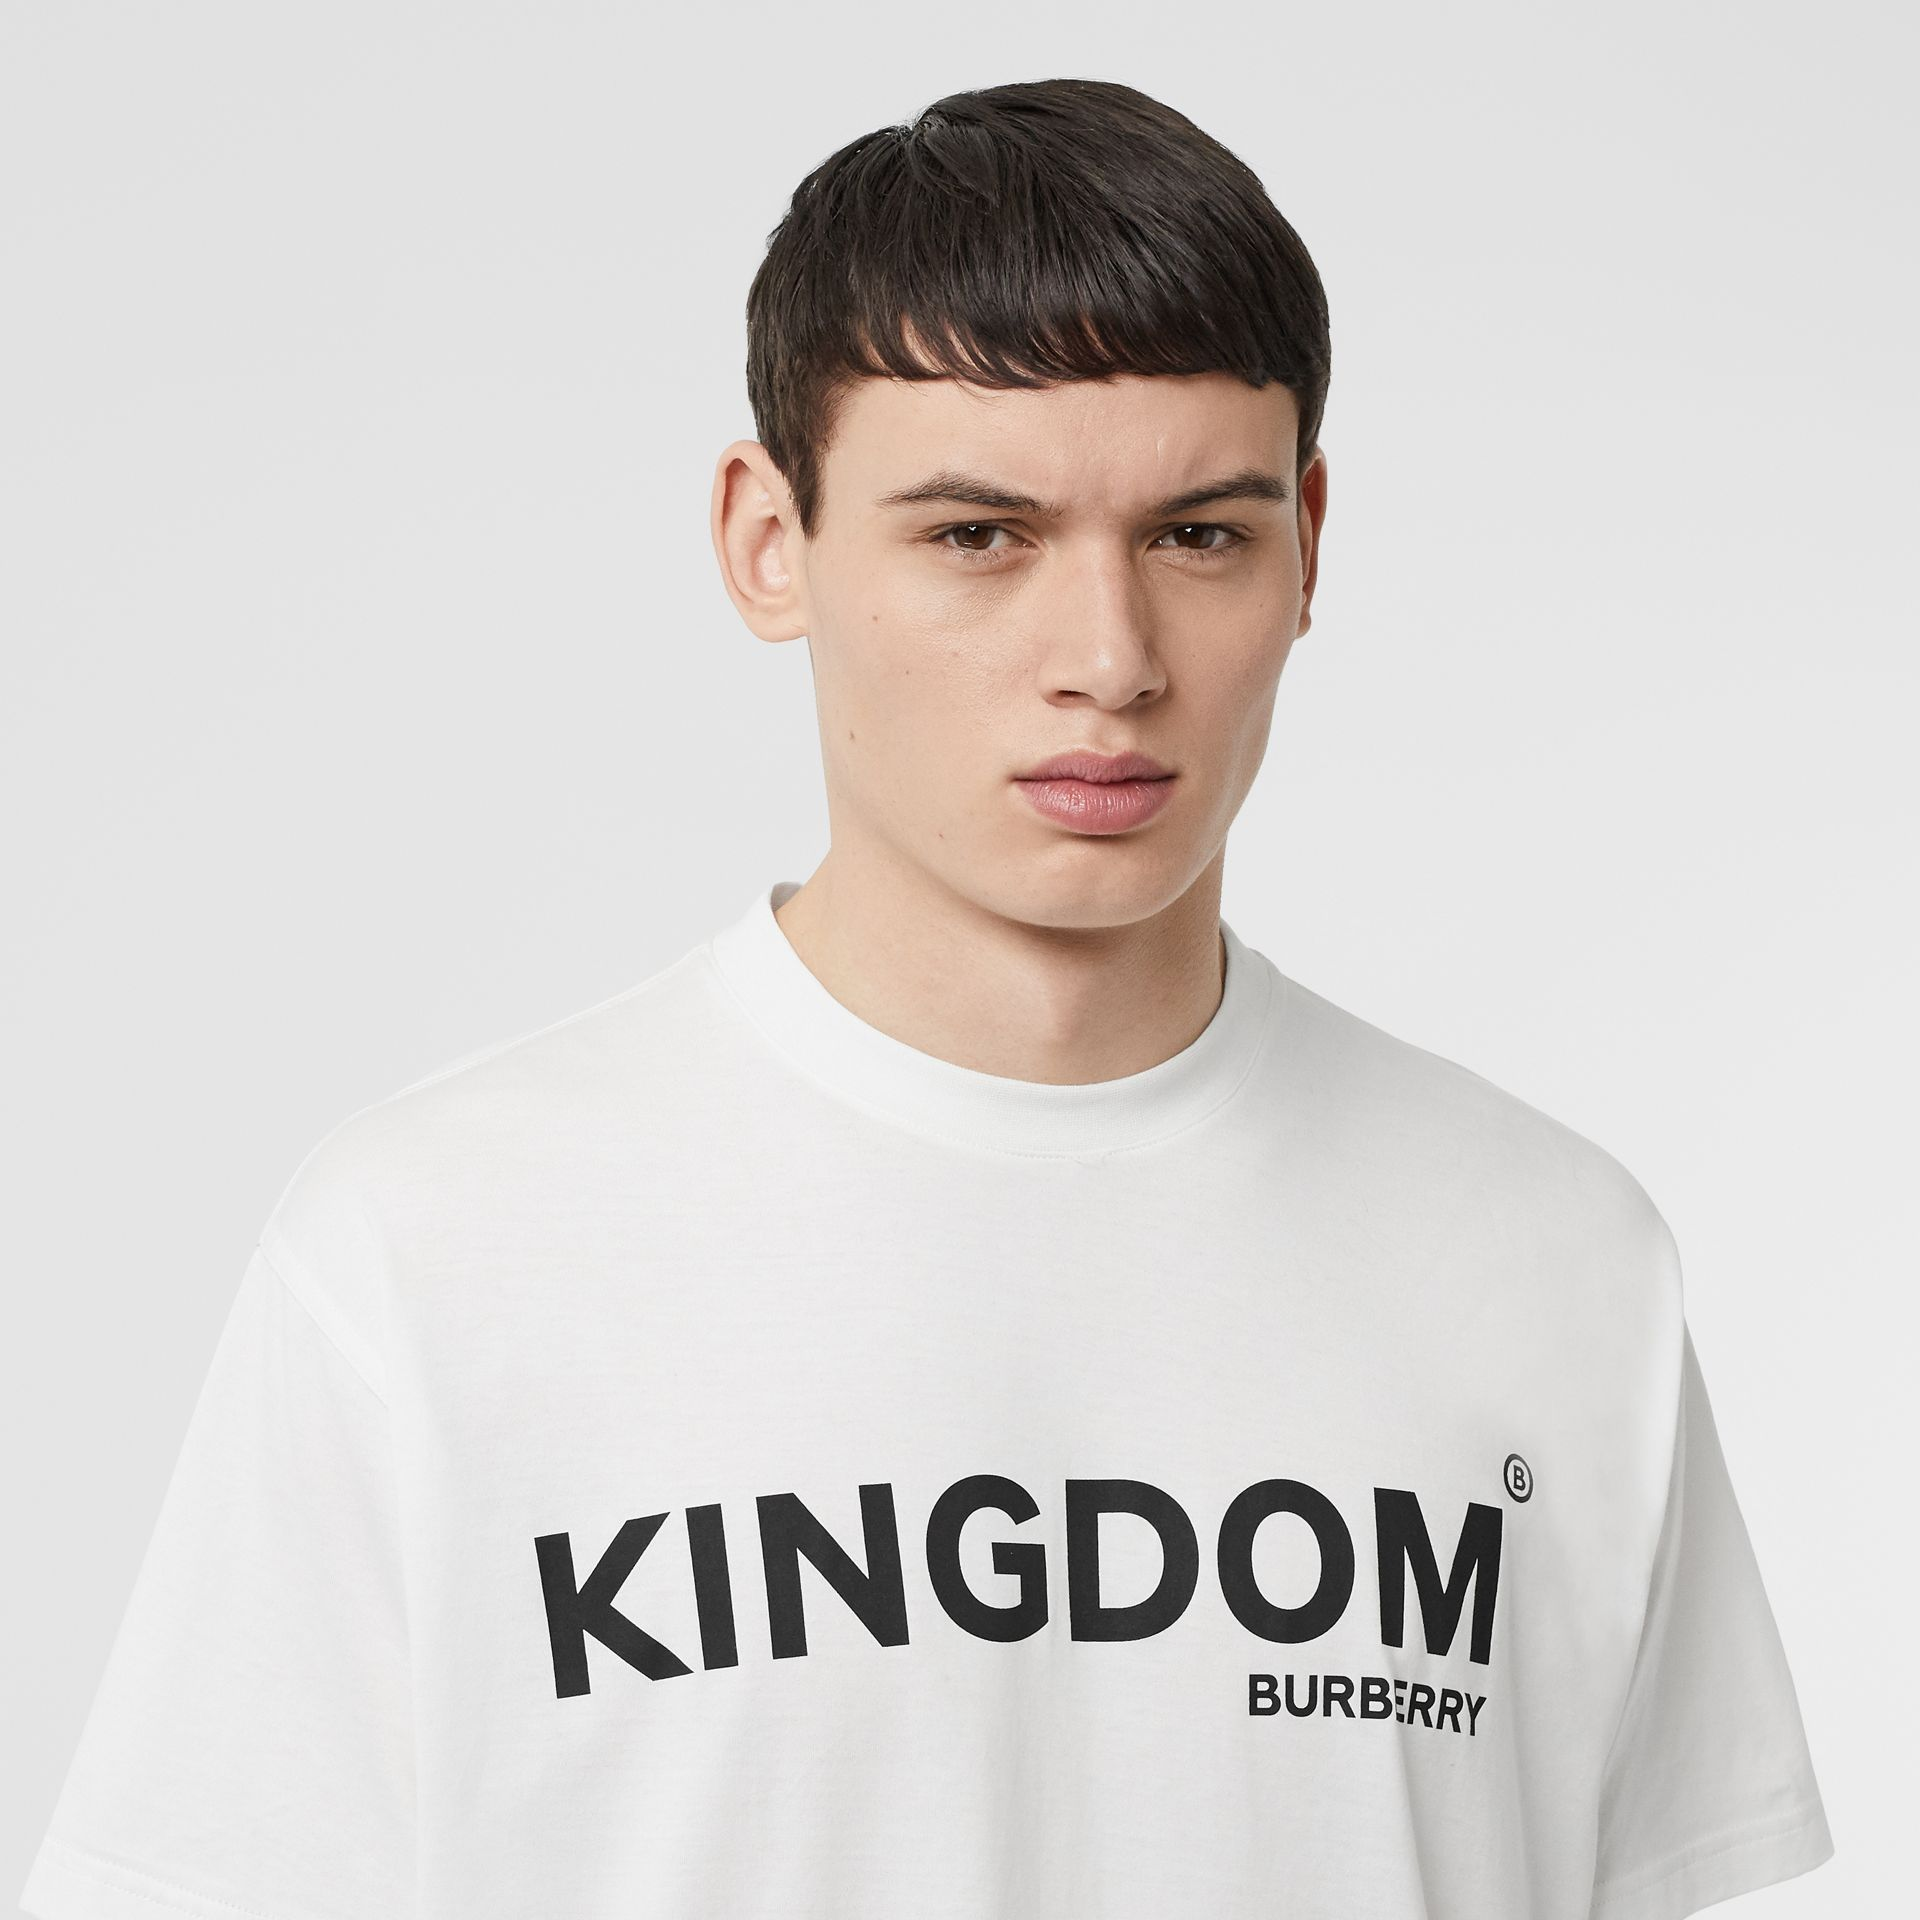 Kingdom Print Cotton T-shirt in White - Men | Burberry - gallery image 1